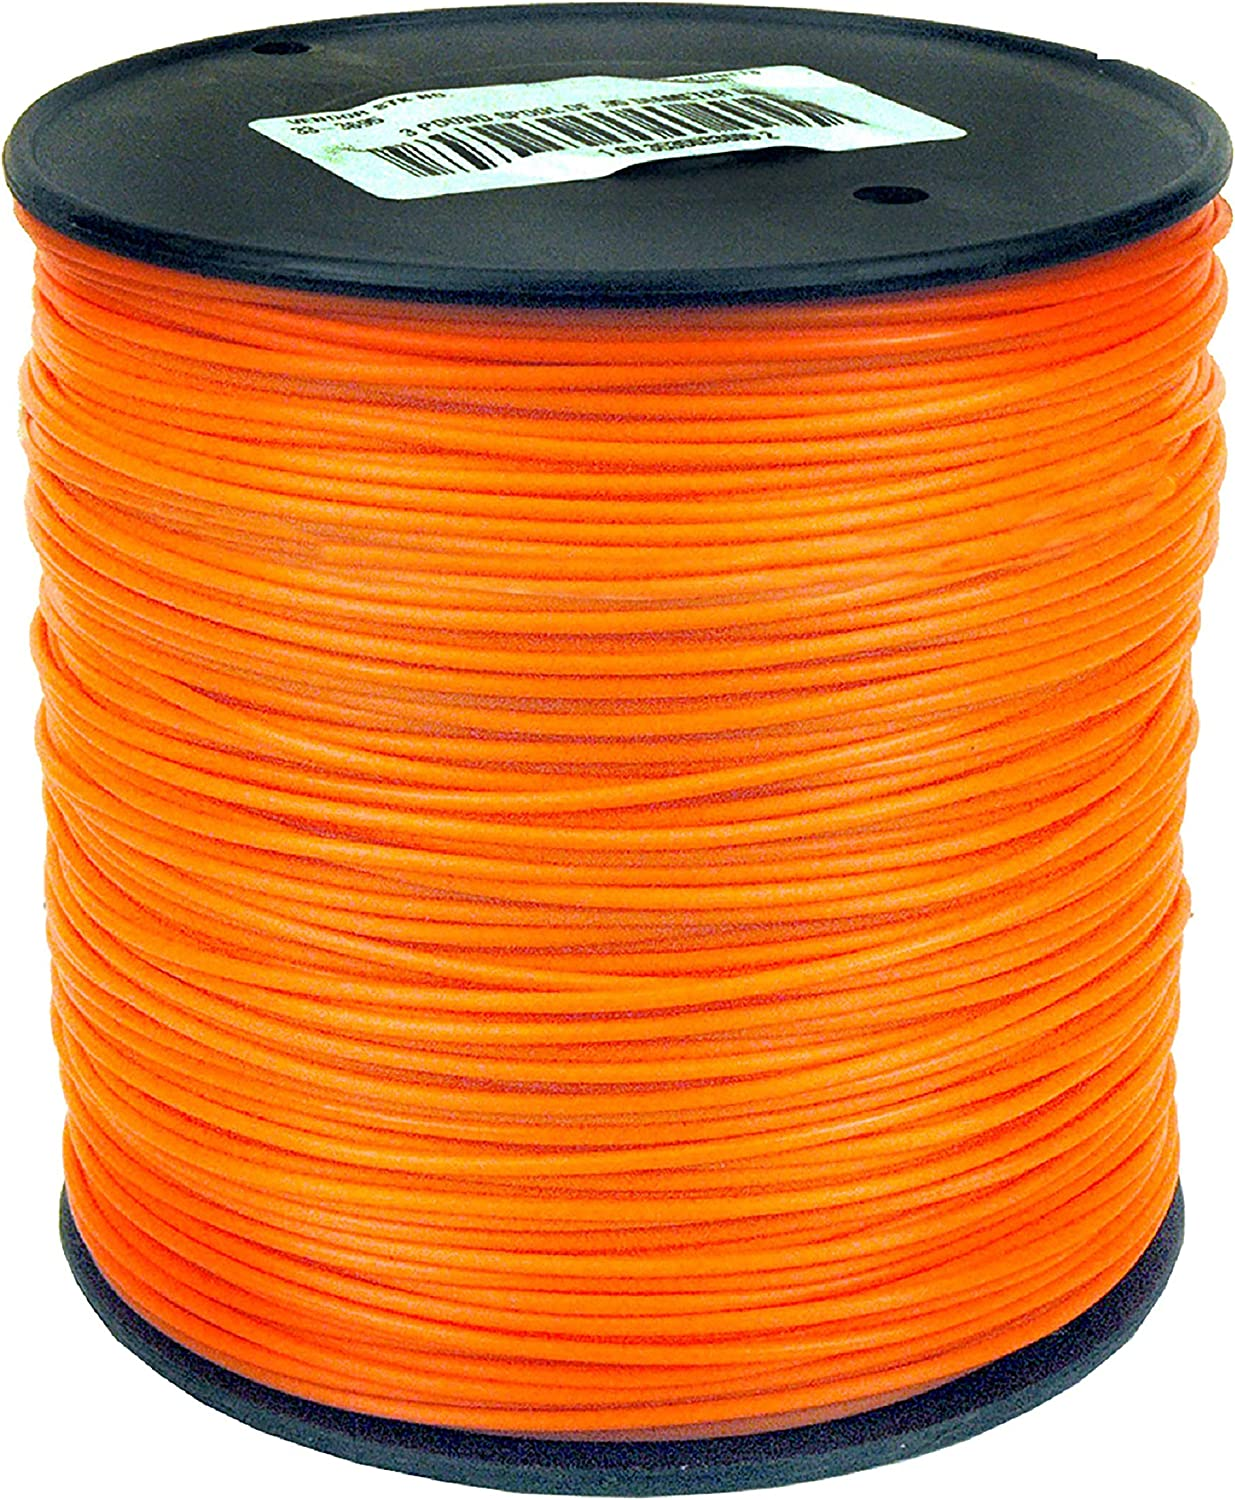 Maxpower 333695 Residential Grade Round .095-Inch Trimmer Line